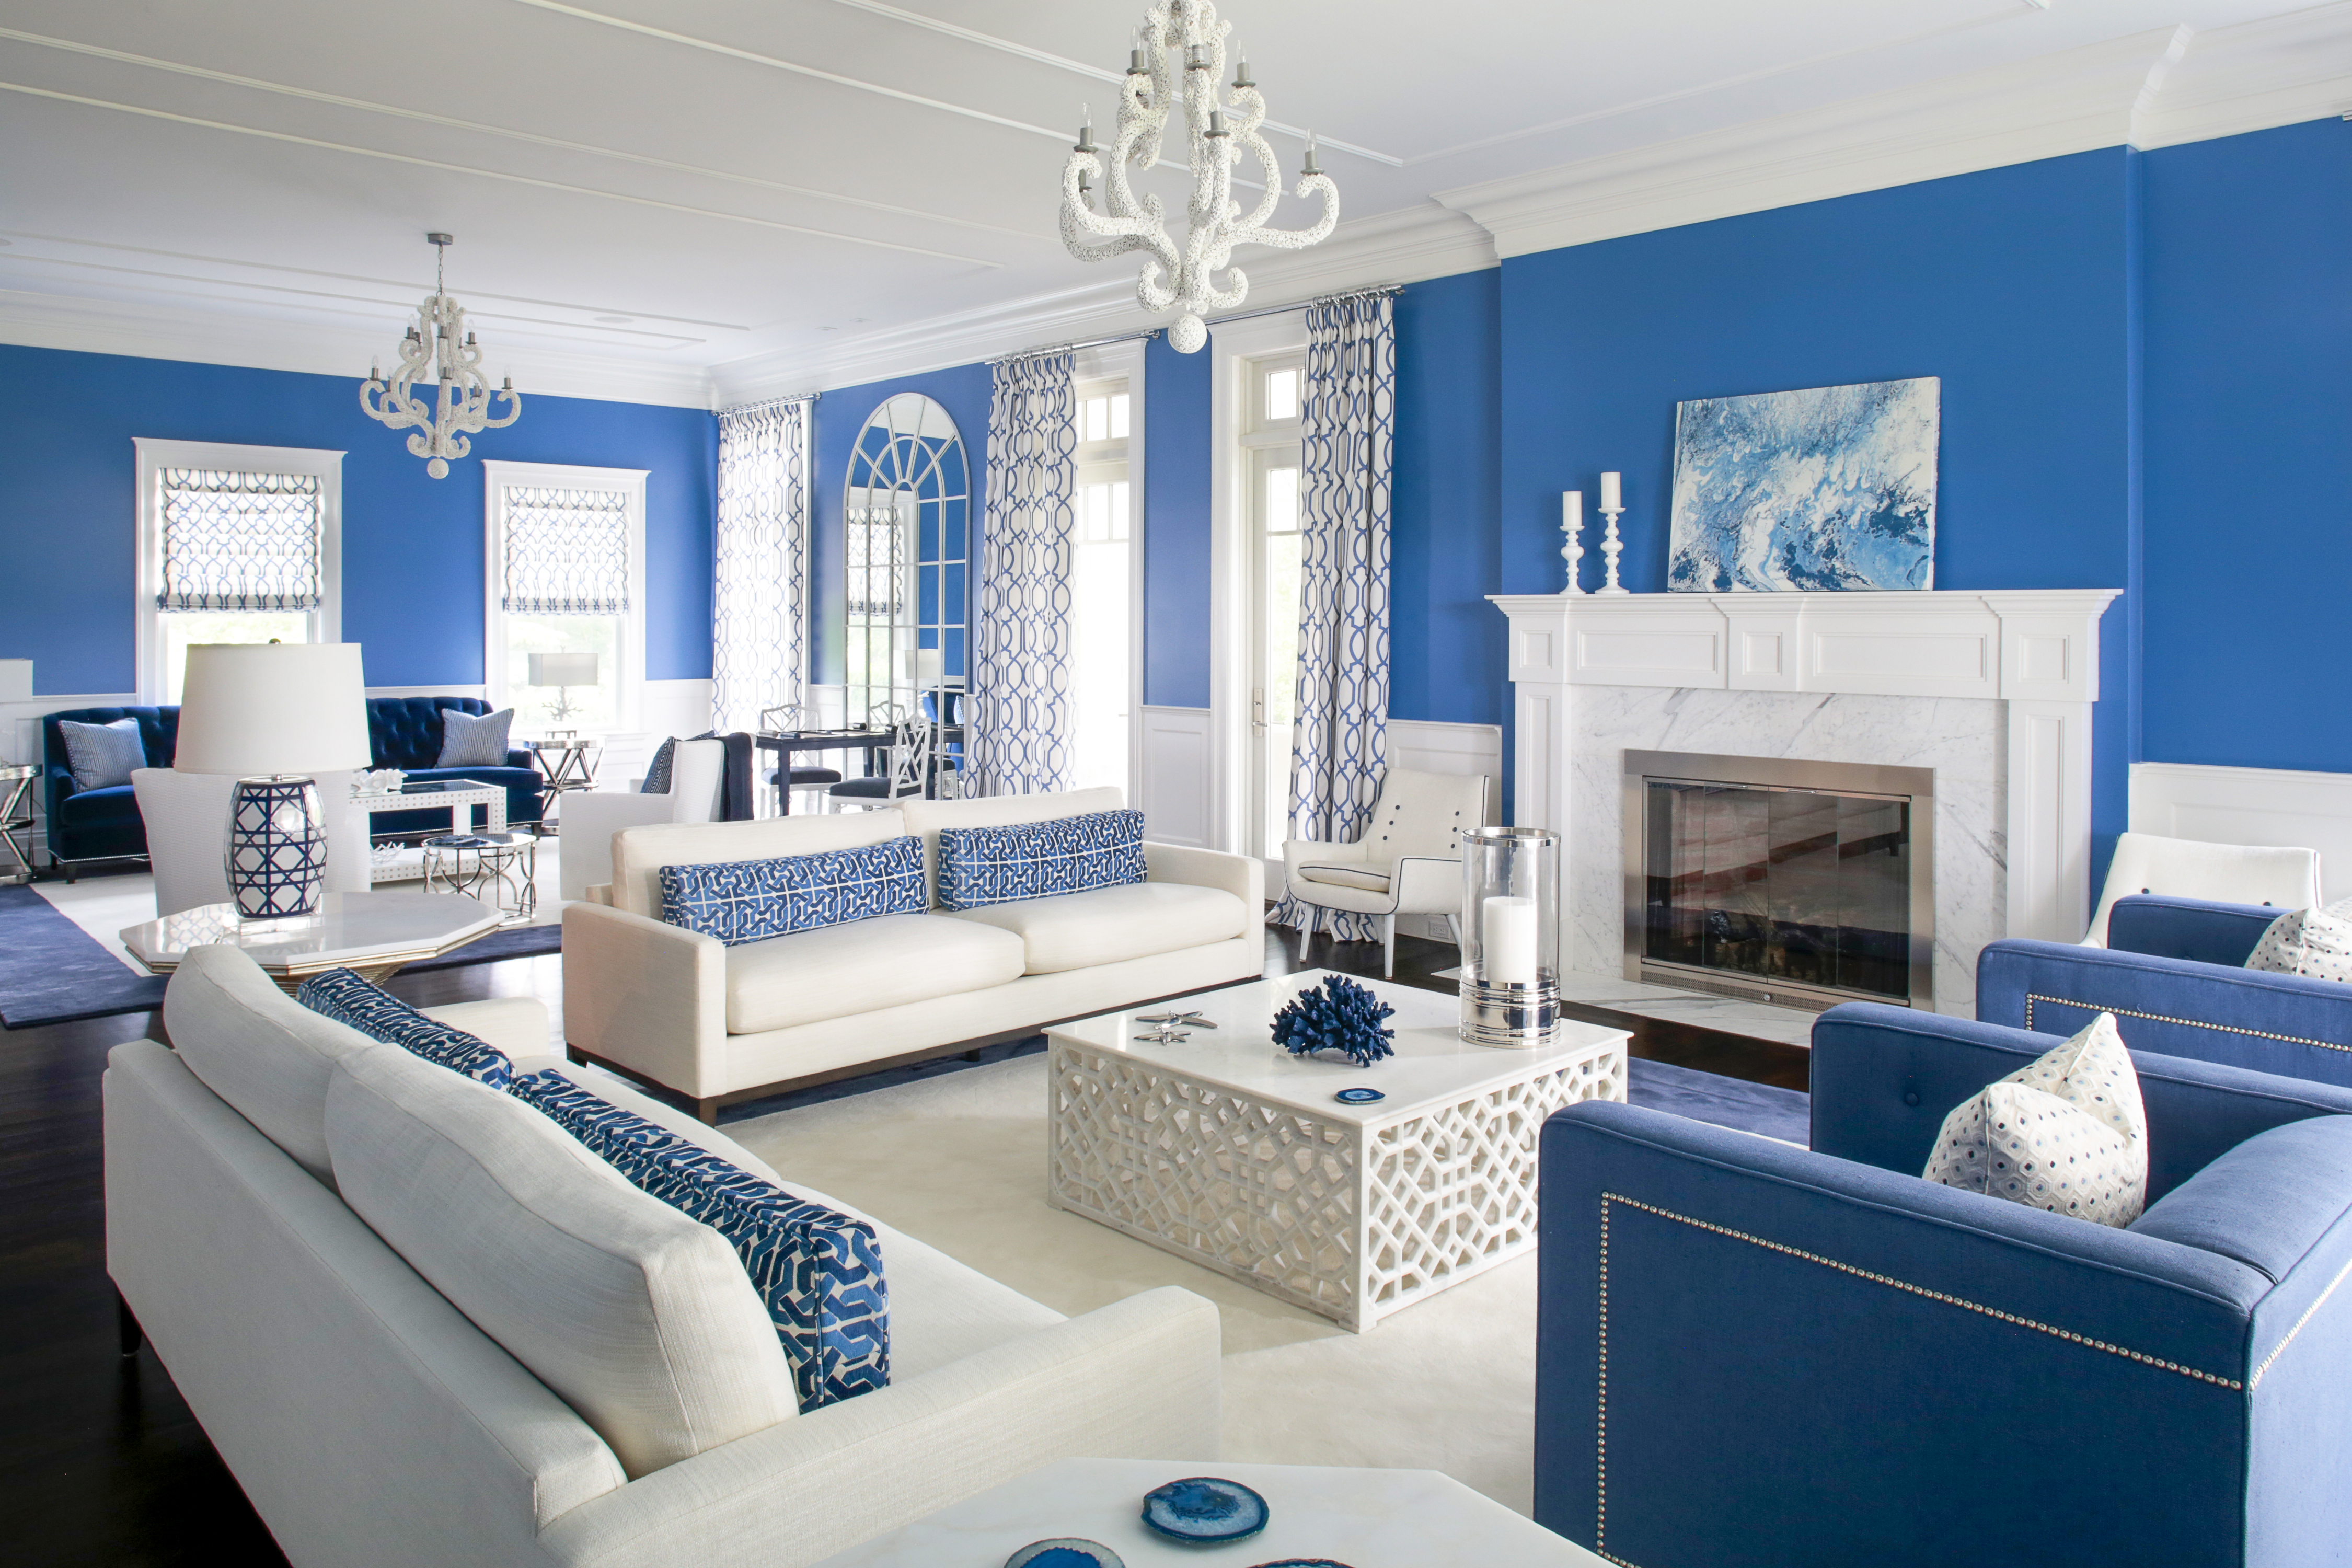 Blue Interior Design new kdhamptons design diary: mabley handler delights with blue